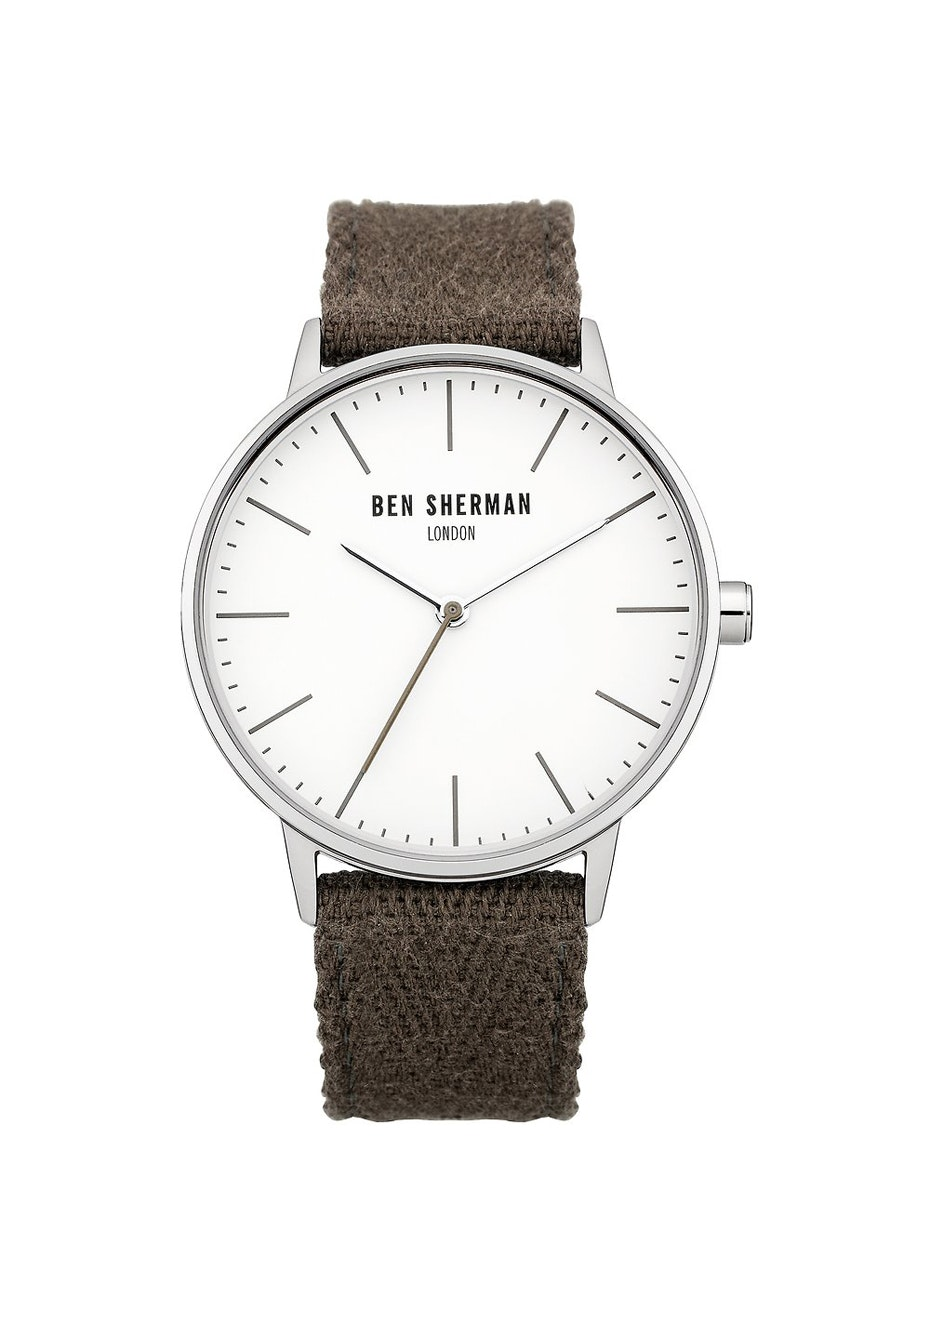 Ben Sherman - Khaki Watch With White Dial